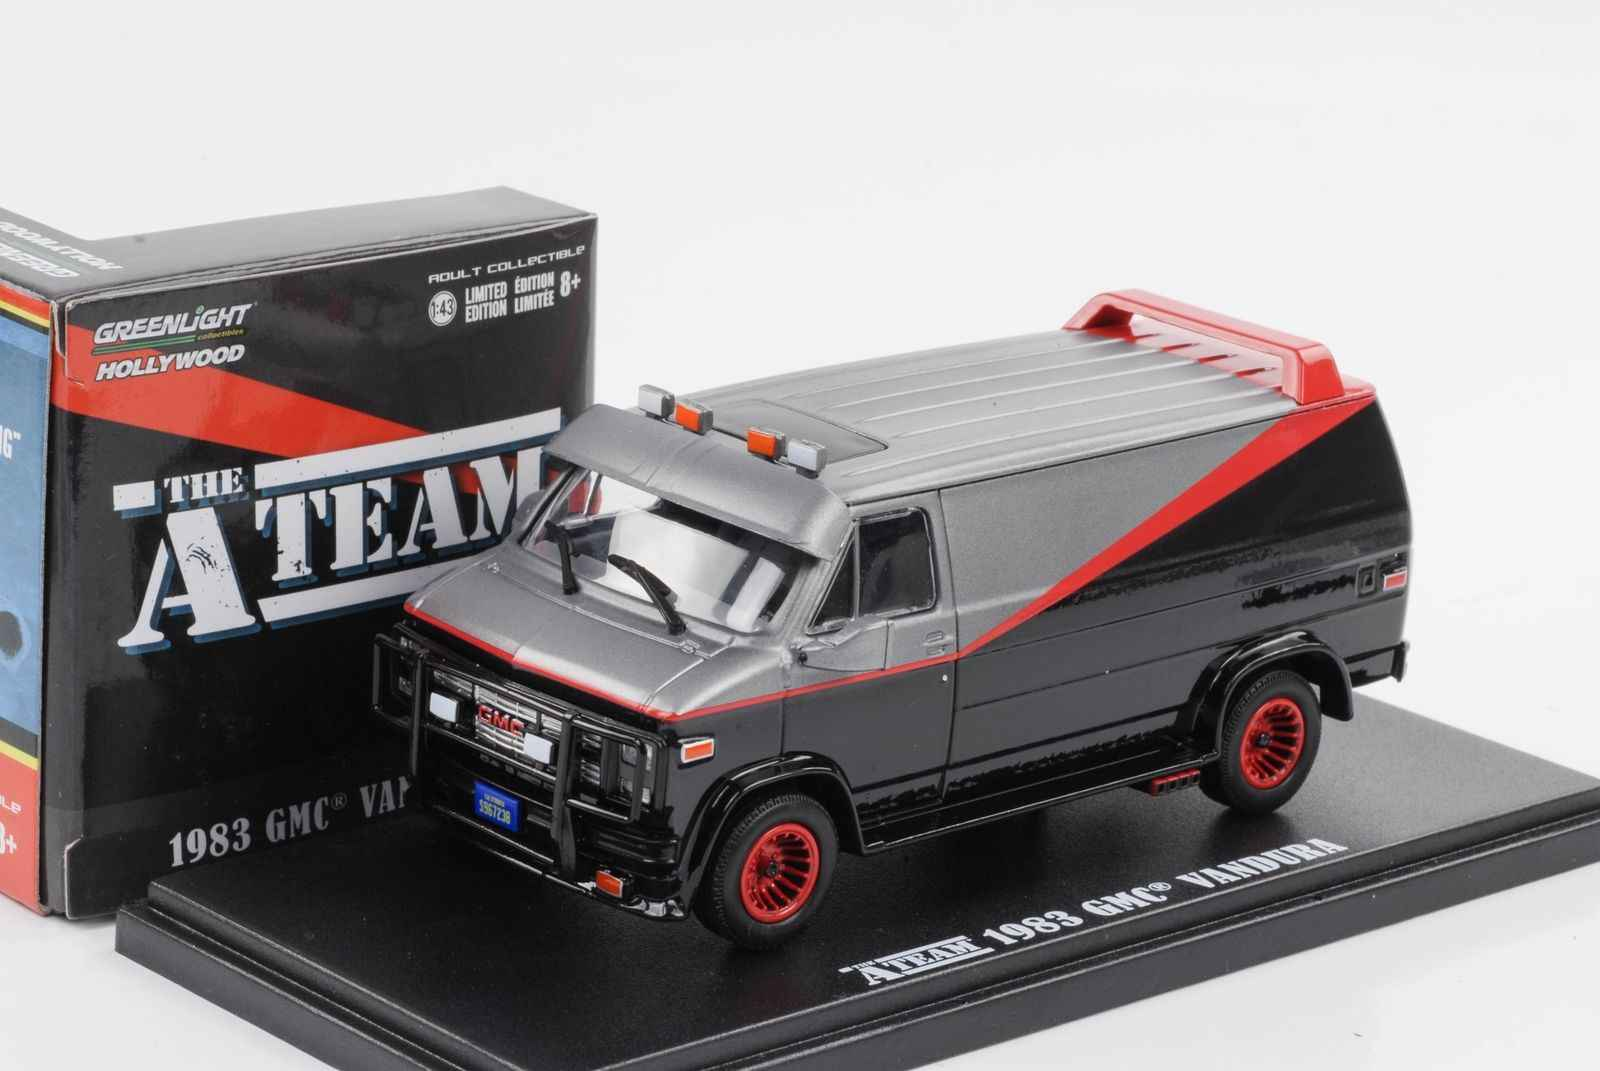 Green Light 1:43 1983 GMC Vandura The A-Team boutique alloy car toys for children kids toys Model original box